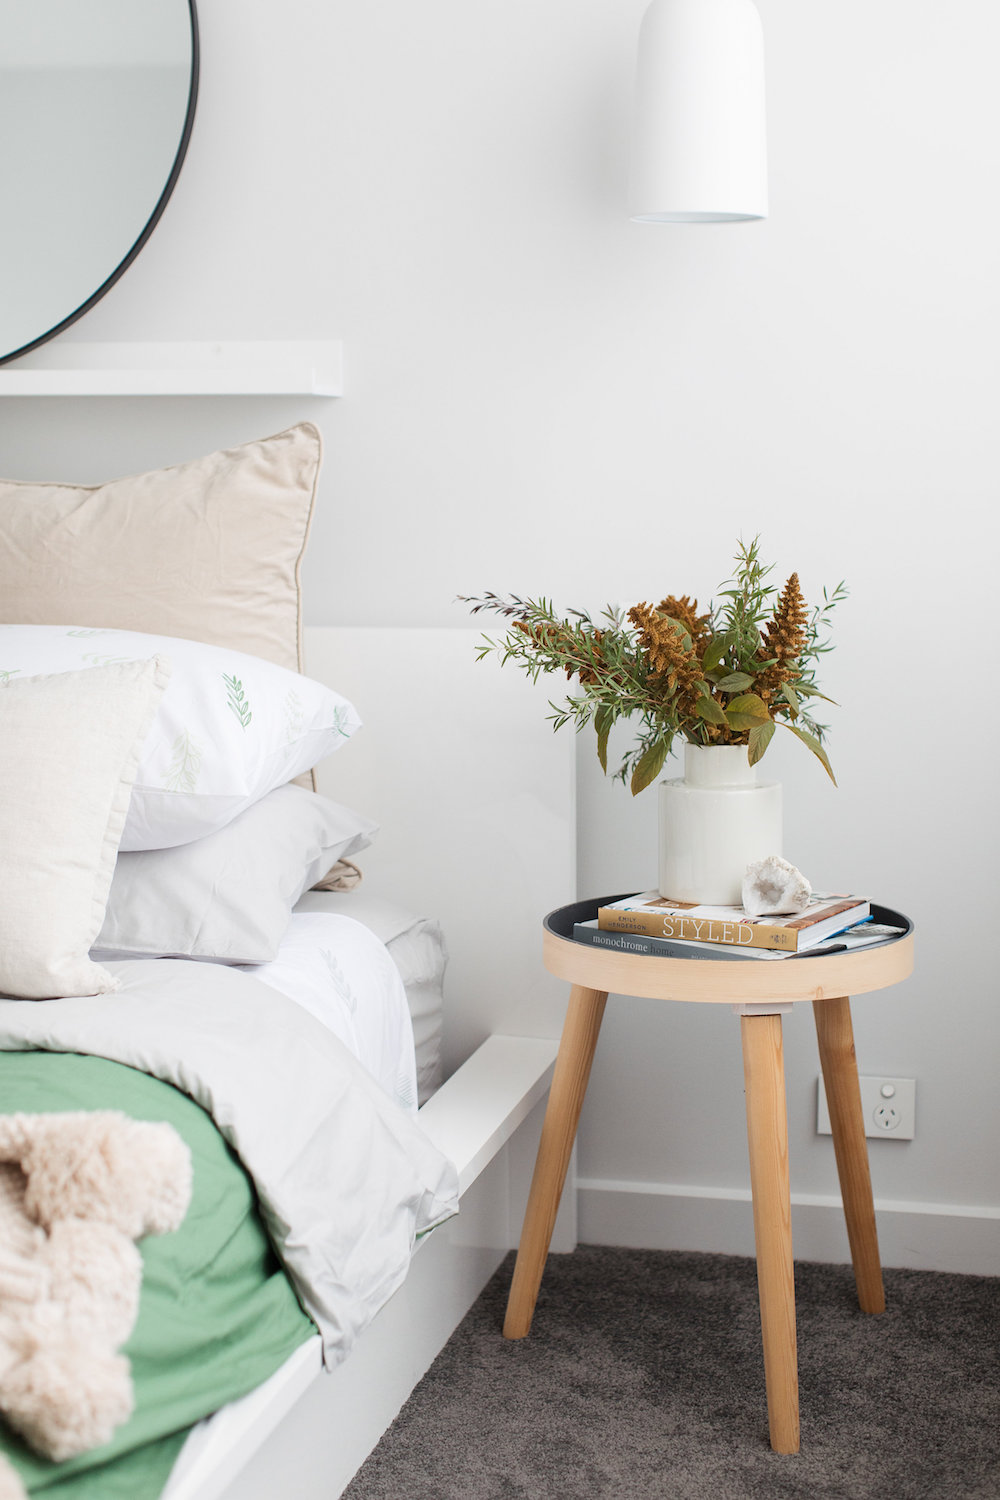 Bedside details how to style your bedside table